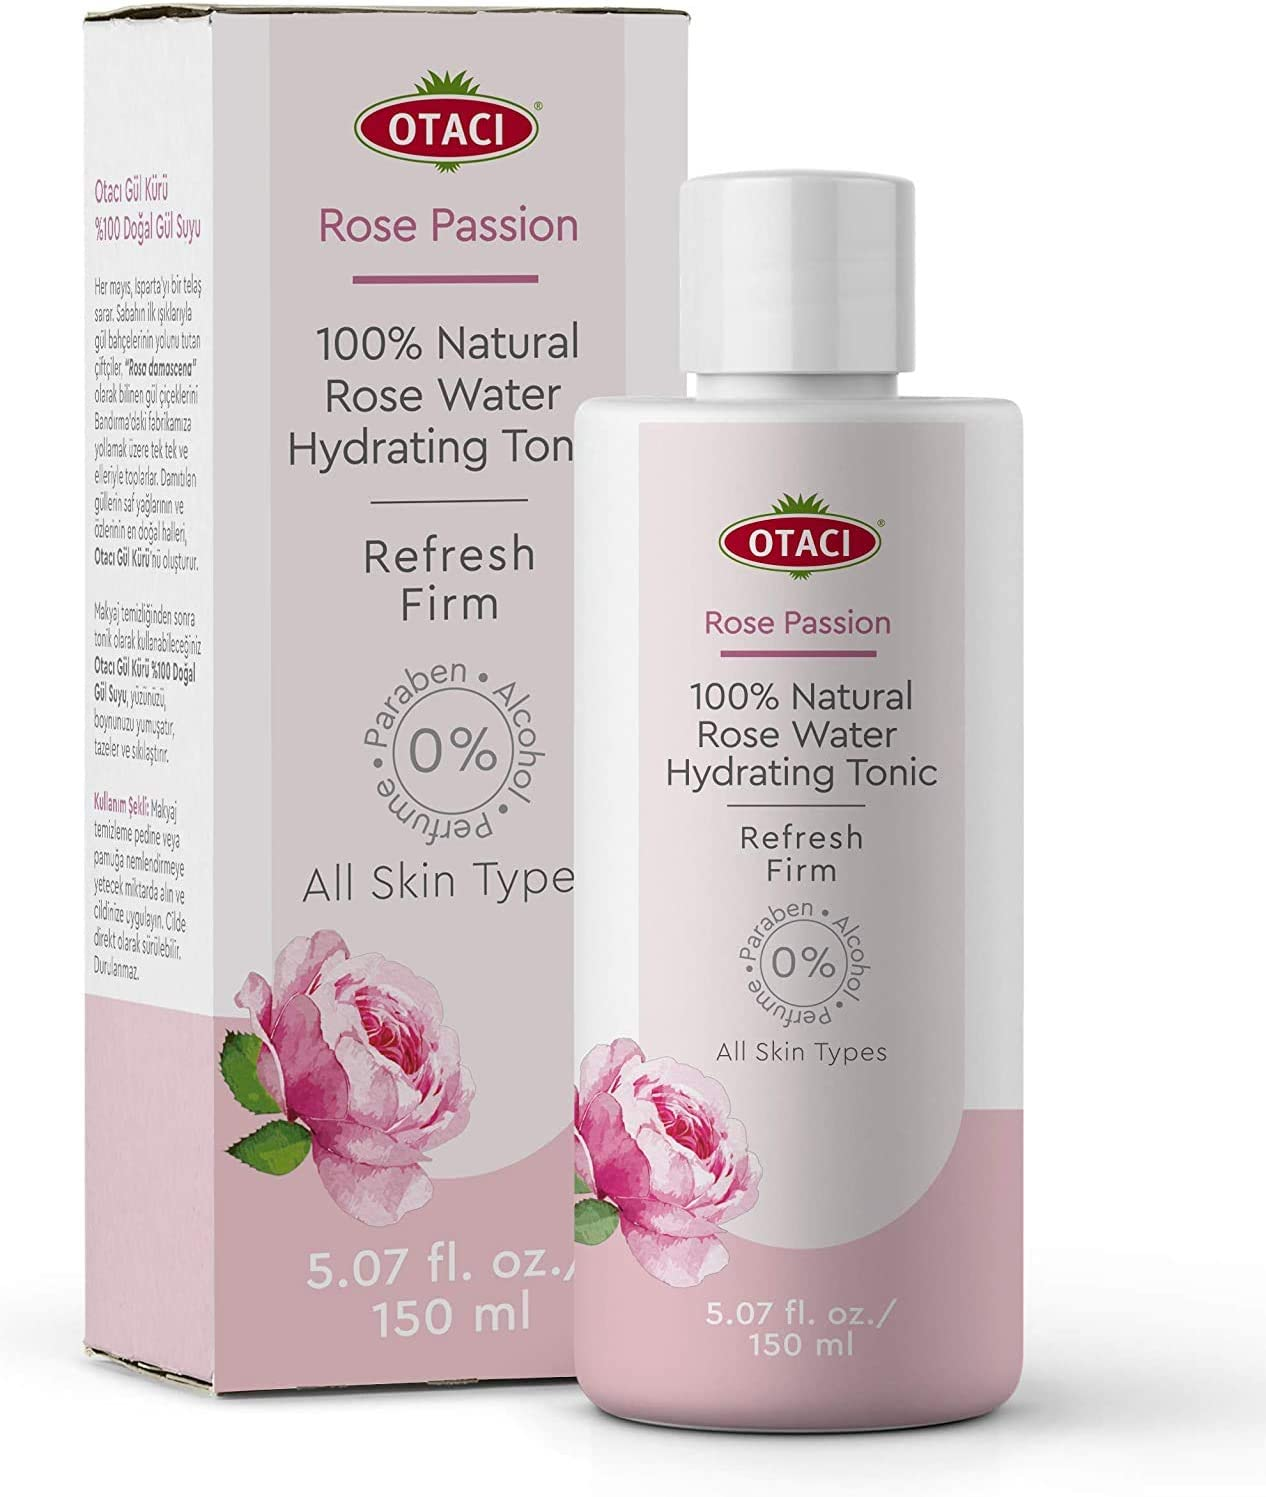 OTACI Rose Passion 100% Natural Rose Water Hydrating Toner, Facial Skin Moisturizer Hydrating Natural Cleanser